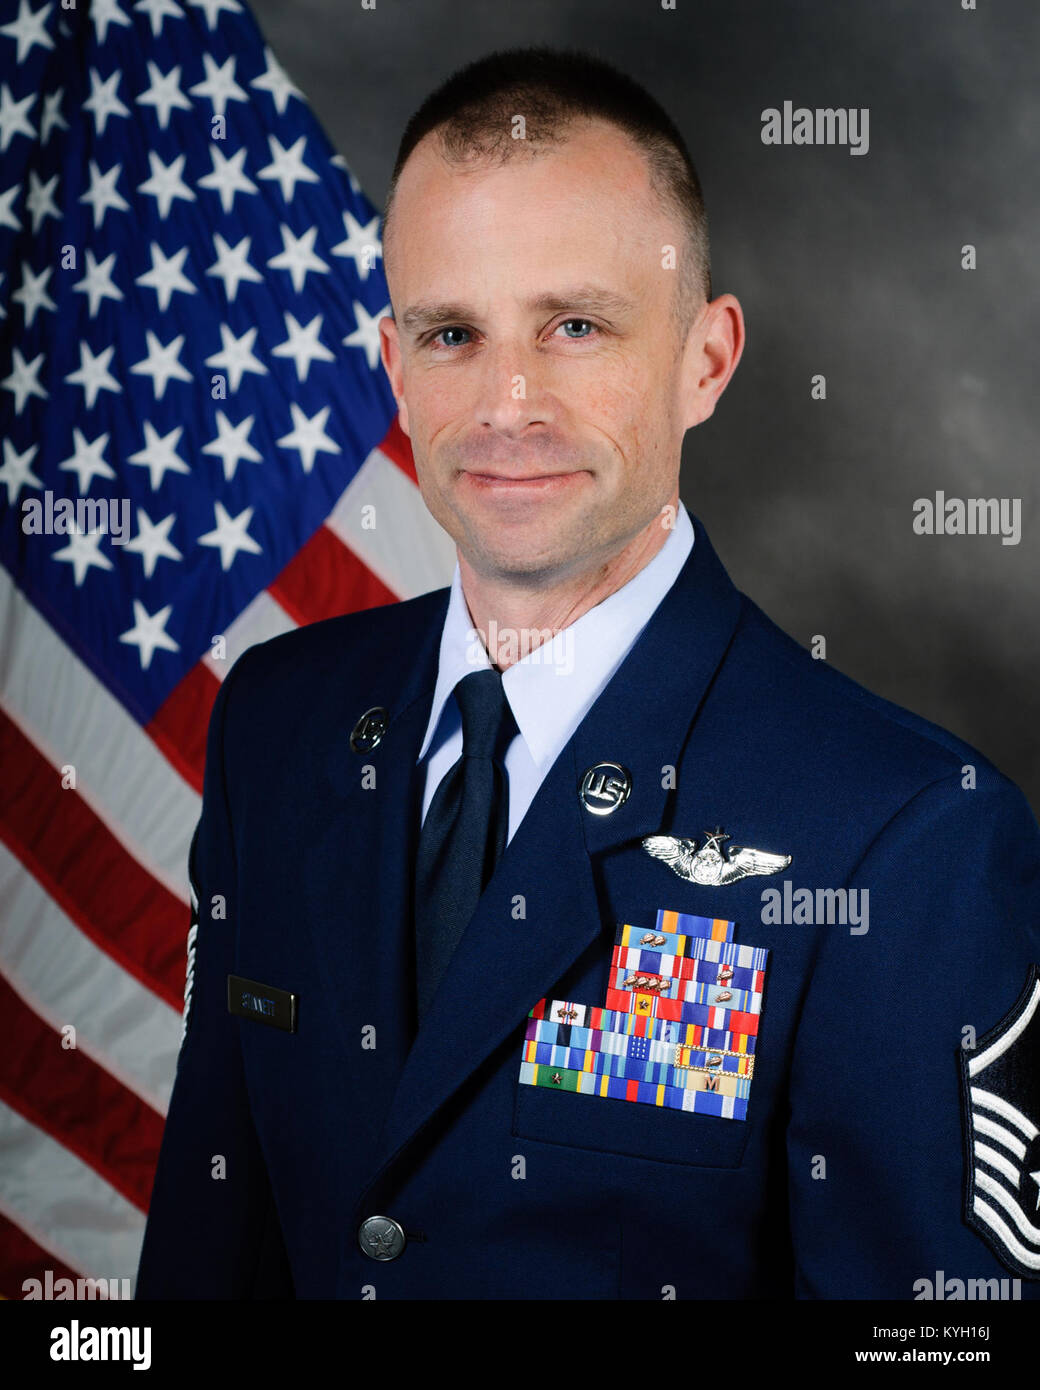 Master Sgt. Clint Stinnett, a loadmaster with the 165th Airlift Squadron, has been named the Kentucky Air National Stock Photo